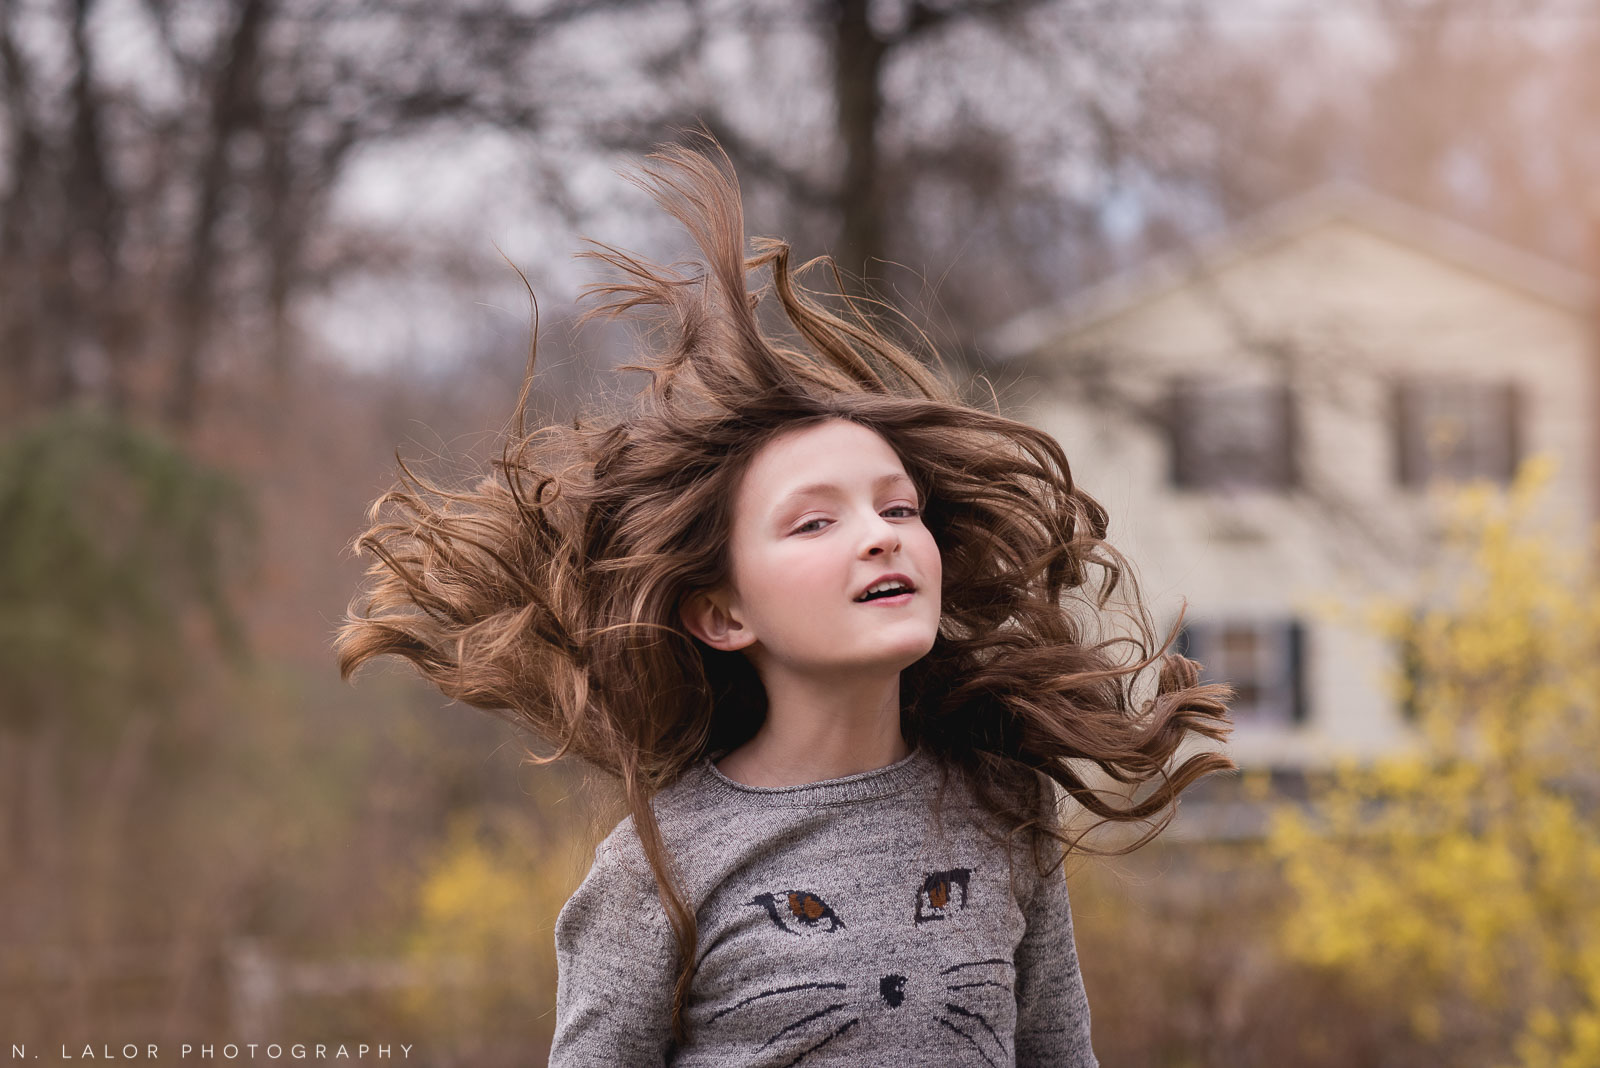 Artistic flying-hair portrait of a tween girl. Editorial-style photo session with N. Lalor Photography. Darien, CT.